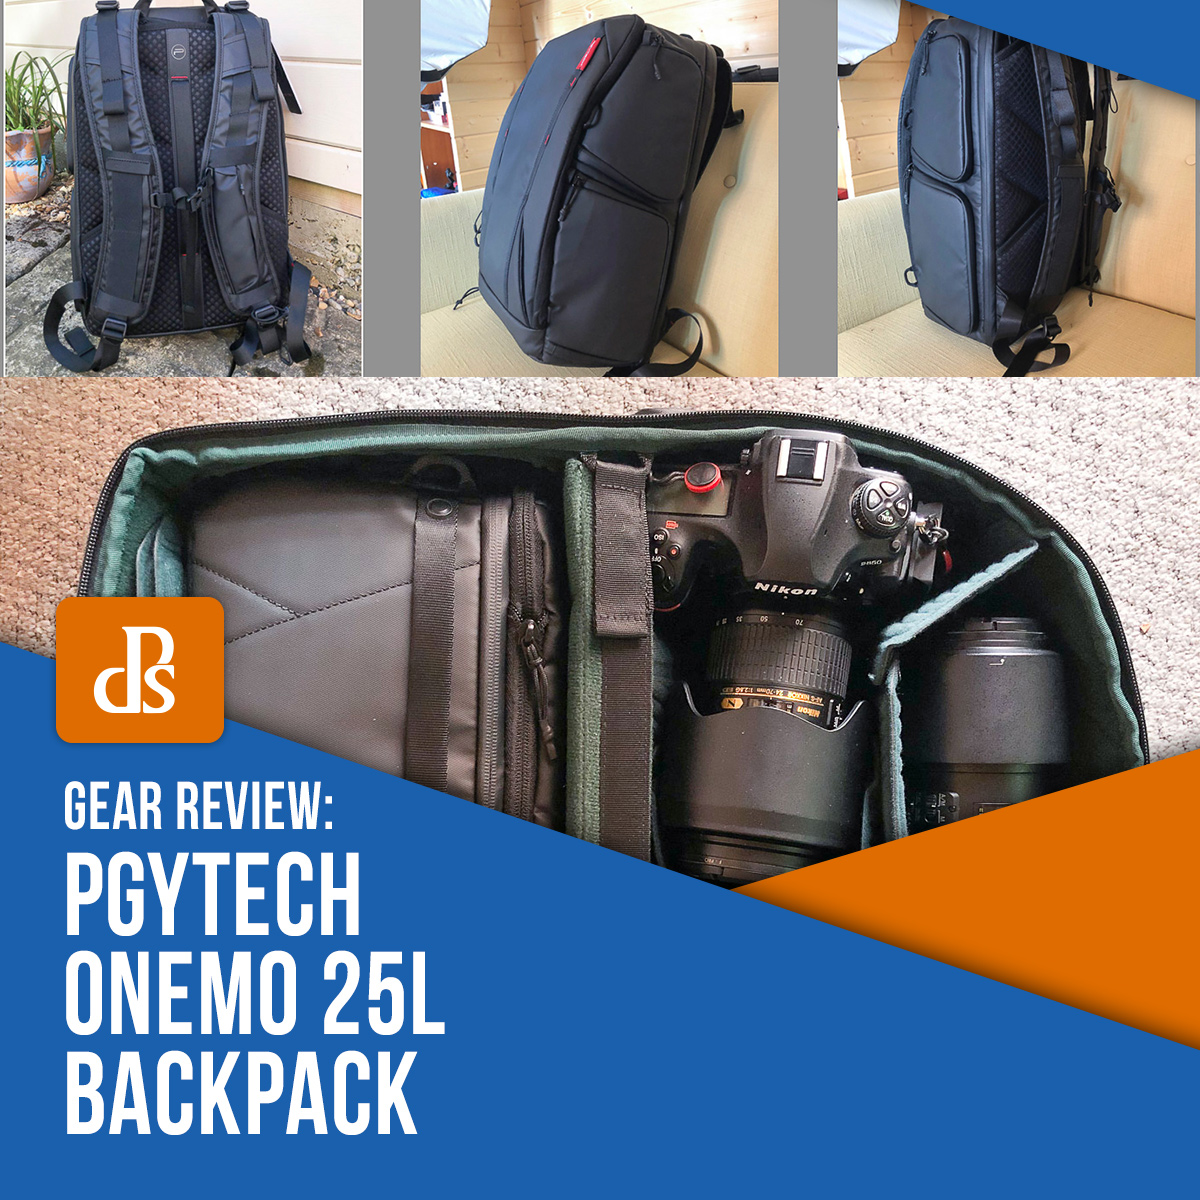 dps-pgytech-onemo-25l-backpack-review